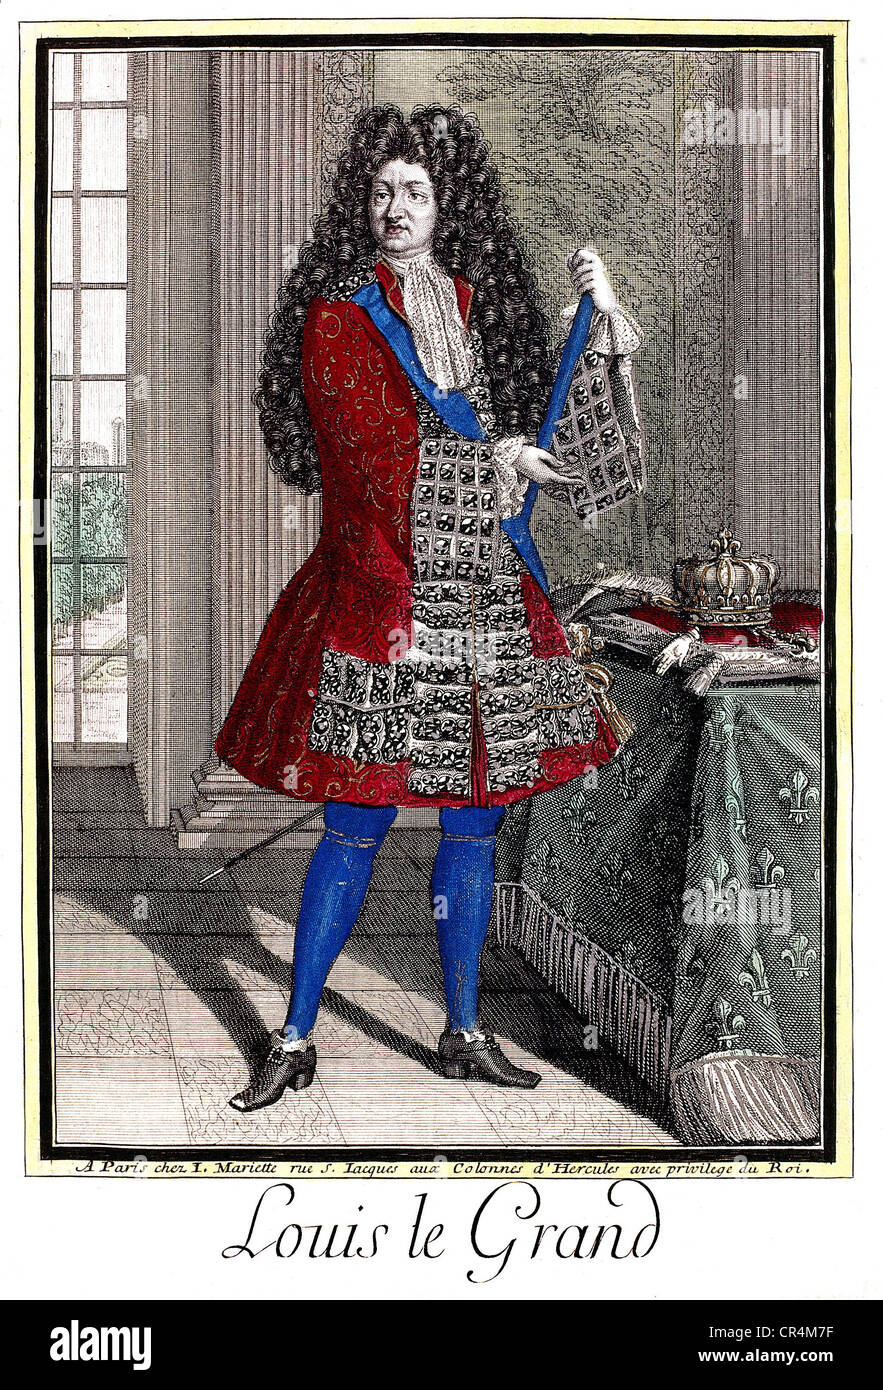 Louis XIV, 5.9.1638 - 1.9.1715, King of France 1643 - 1715, full length, coloured copper engraving by Mariette, Stock Photo